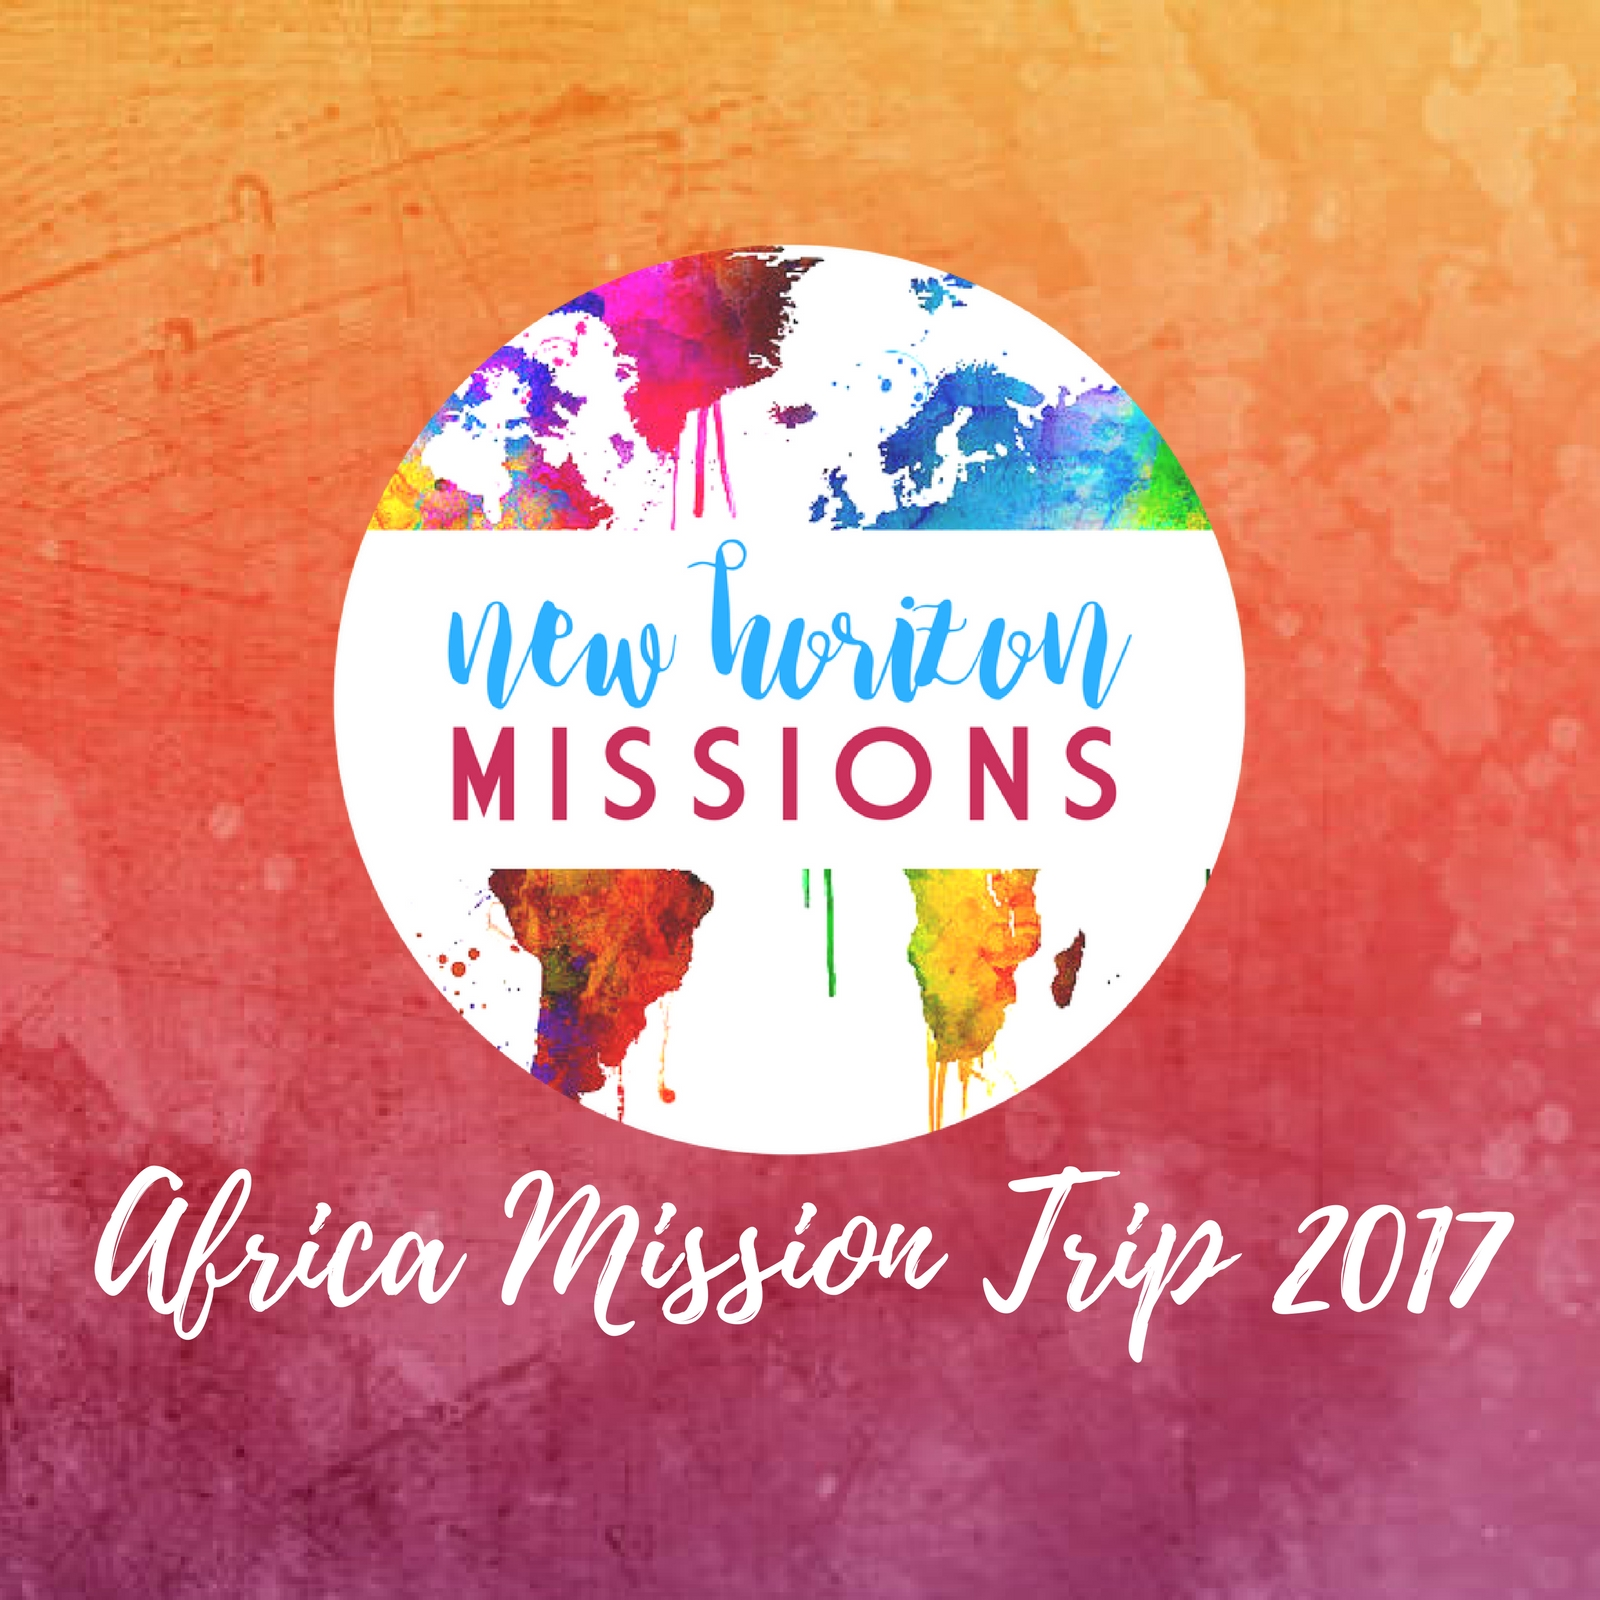 Africa Mission Trip 2017